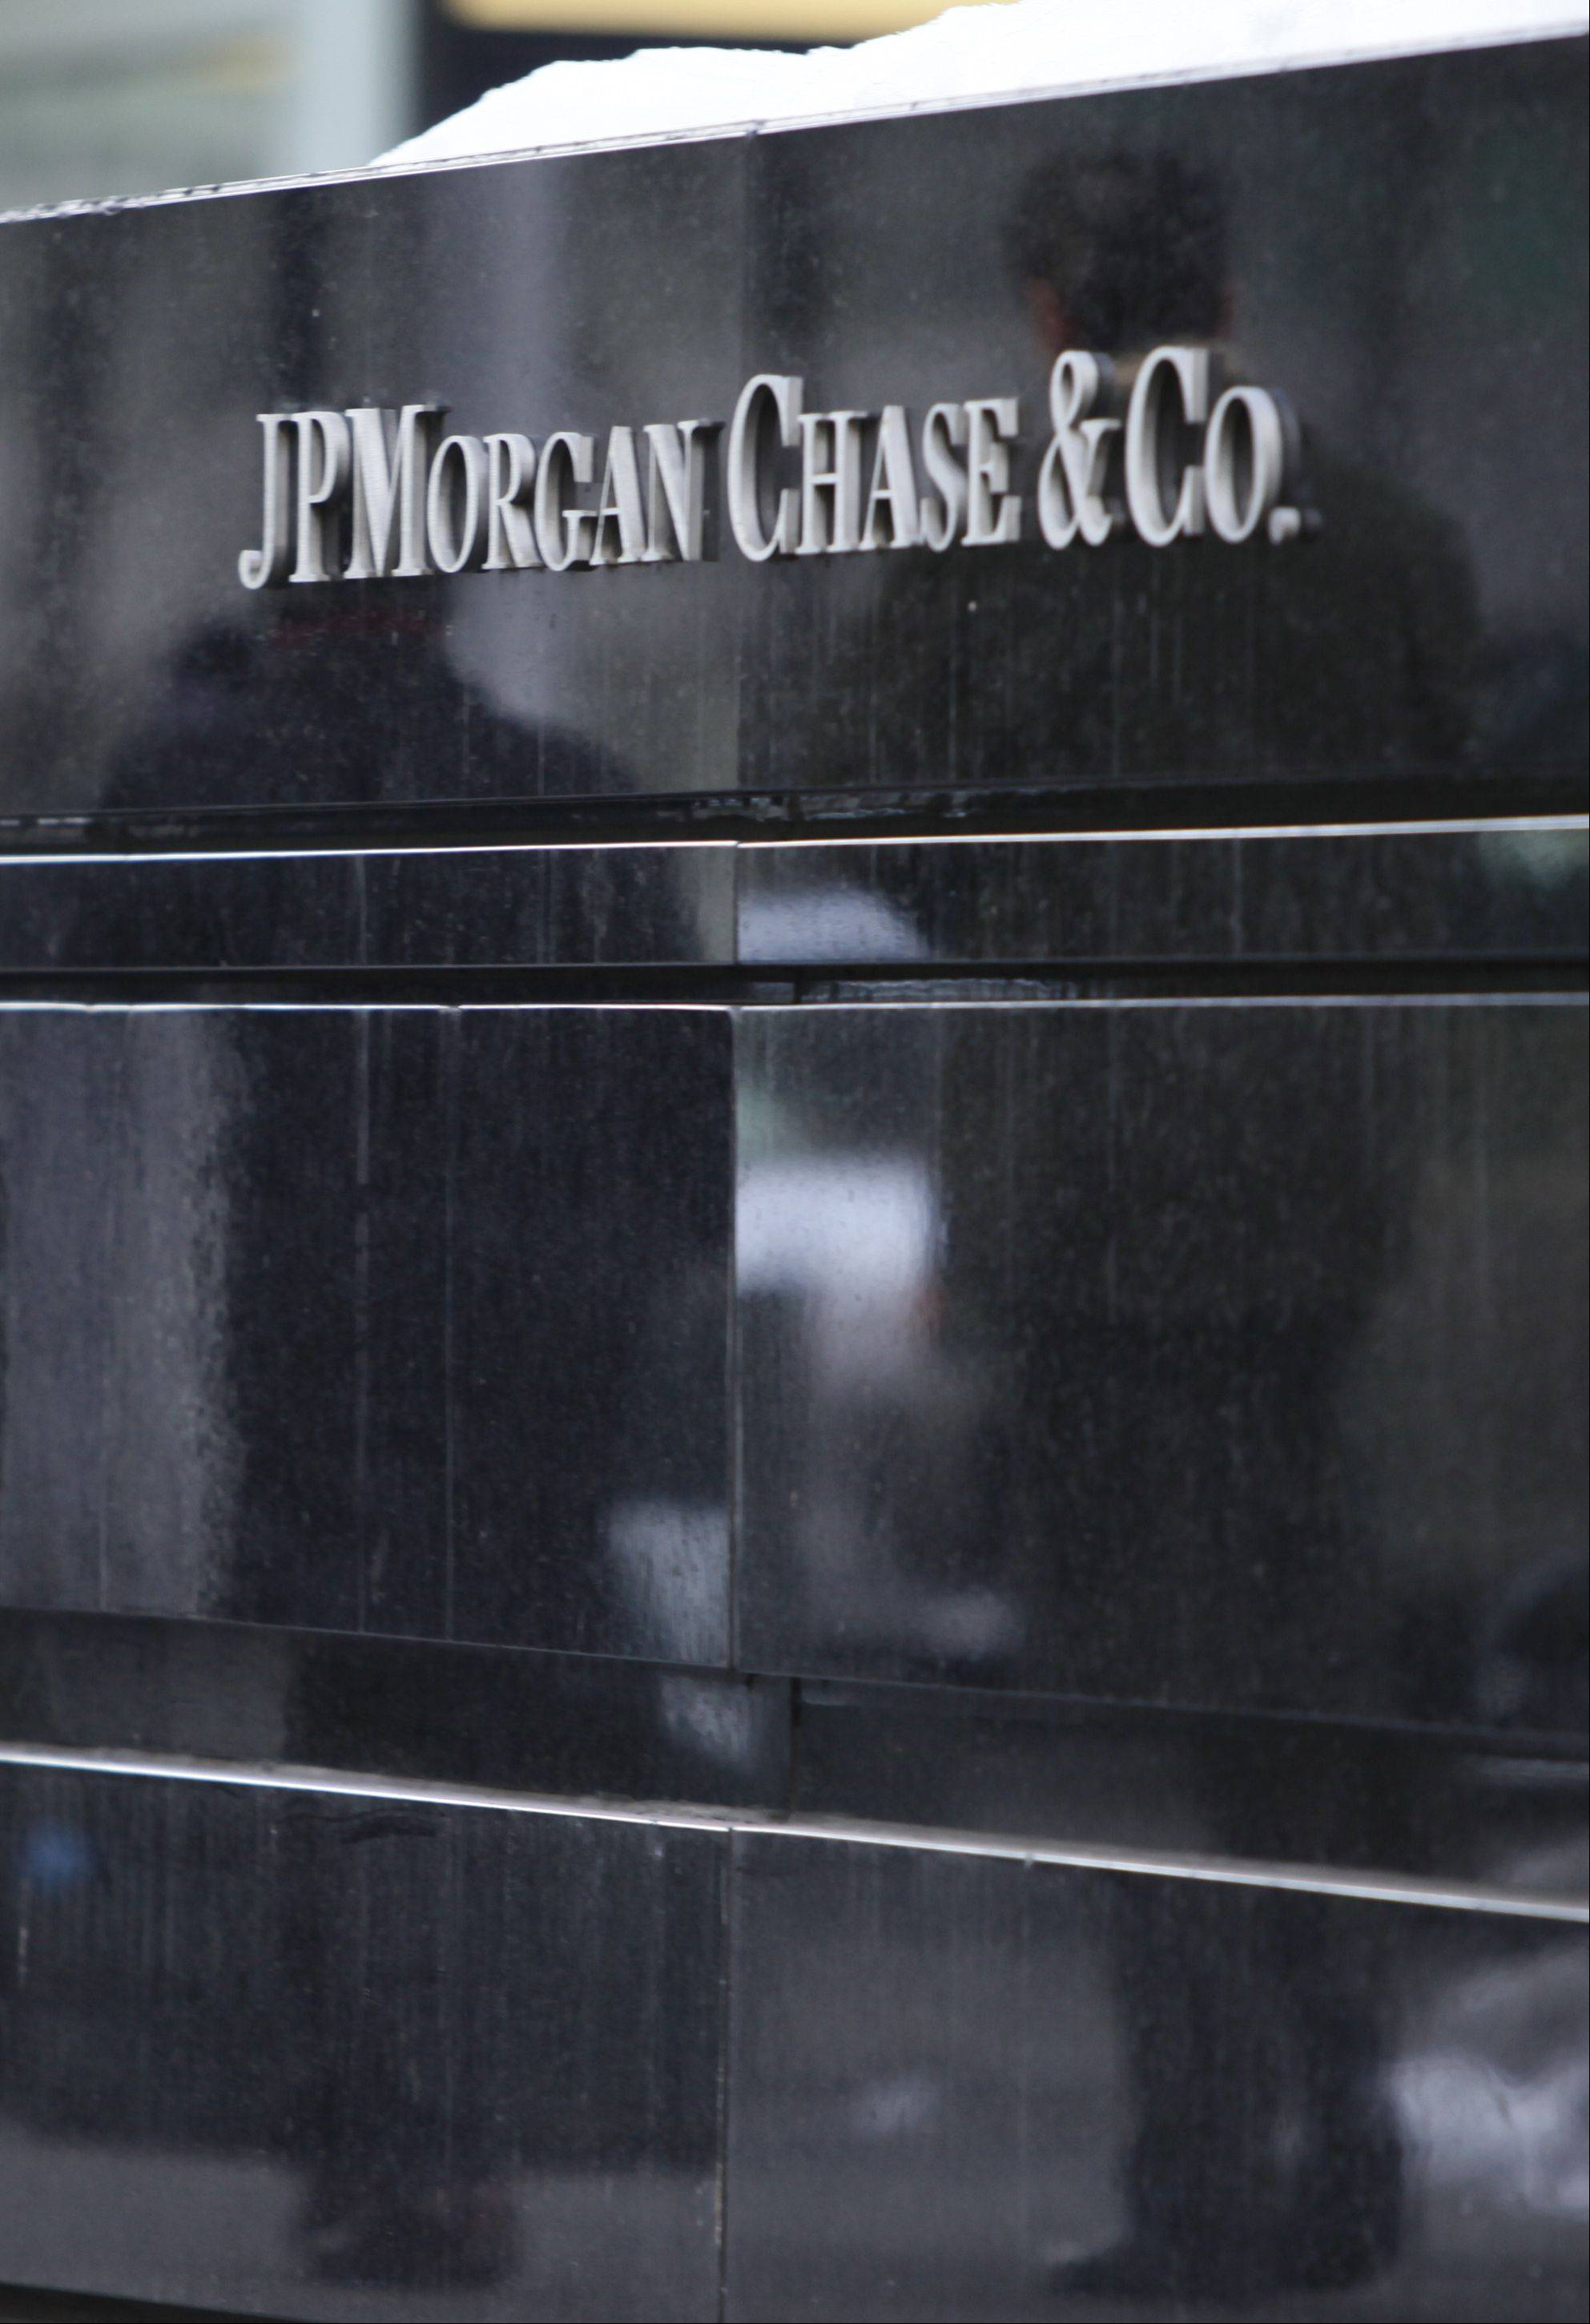 JPMorgan Chase, the biggest U.S. bank by assets, says it returned to a profit in the fourth quarter.The bank said it had net income of $5.3 billion in the last three months of 2013, compared with a profit of $5.7 billion in the same period a year earlier.